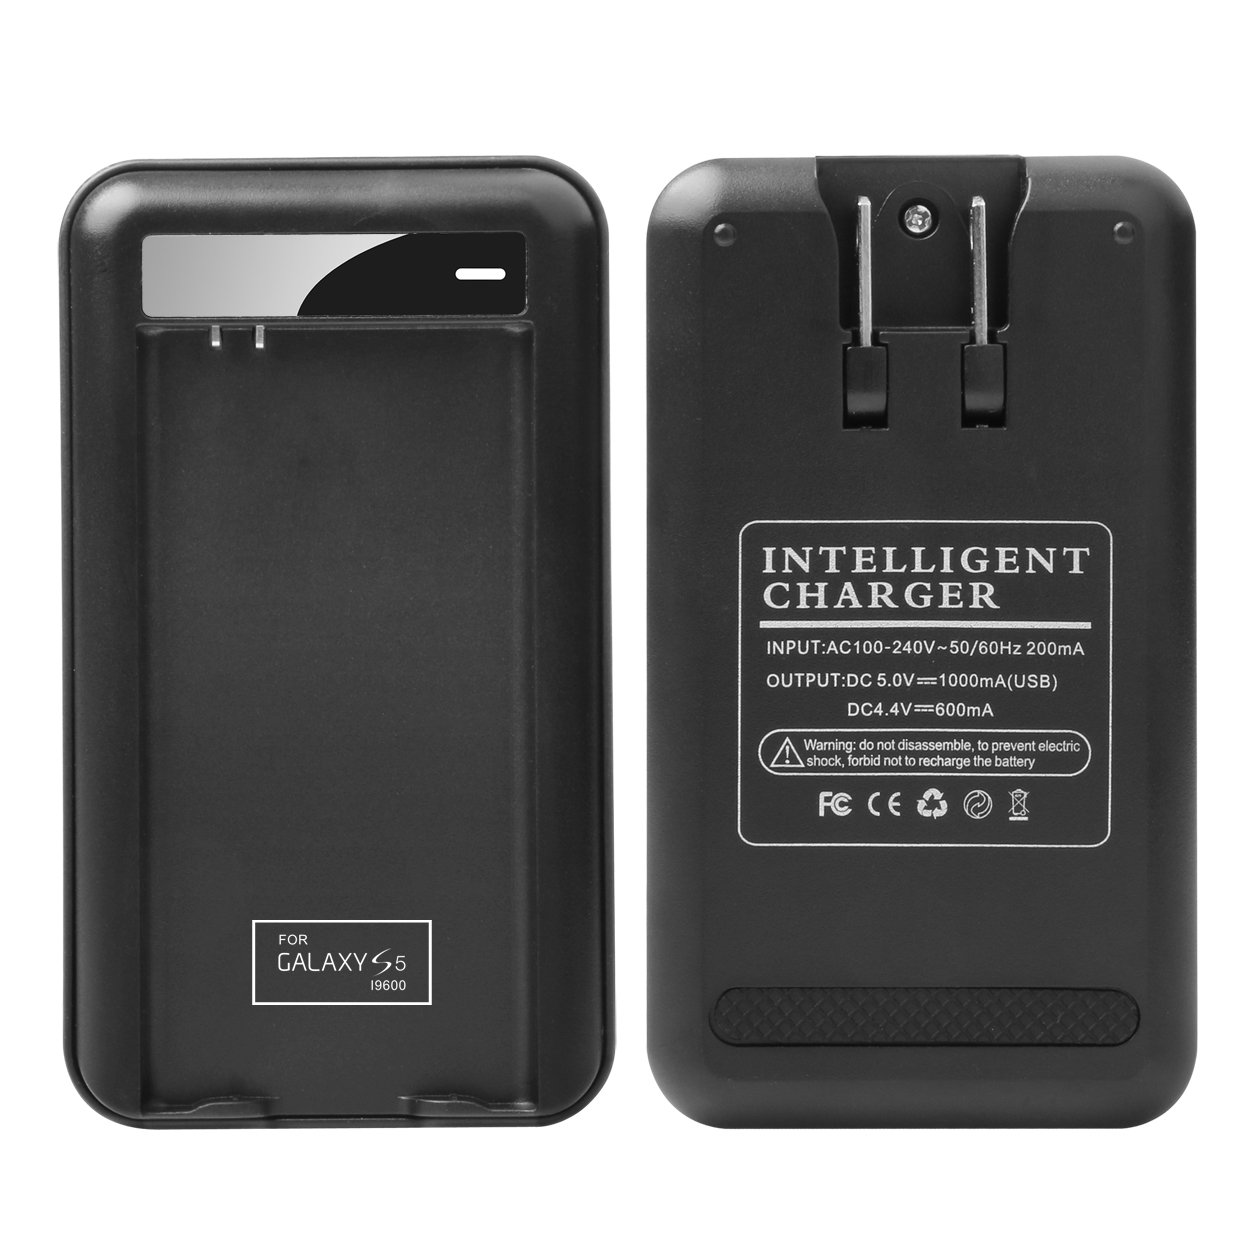 Bateria Celular Samsung Galaxy S5 Specialized Charger: Lrker Specialized Intelligent Portable USB Travel Charger para Sa